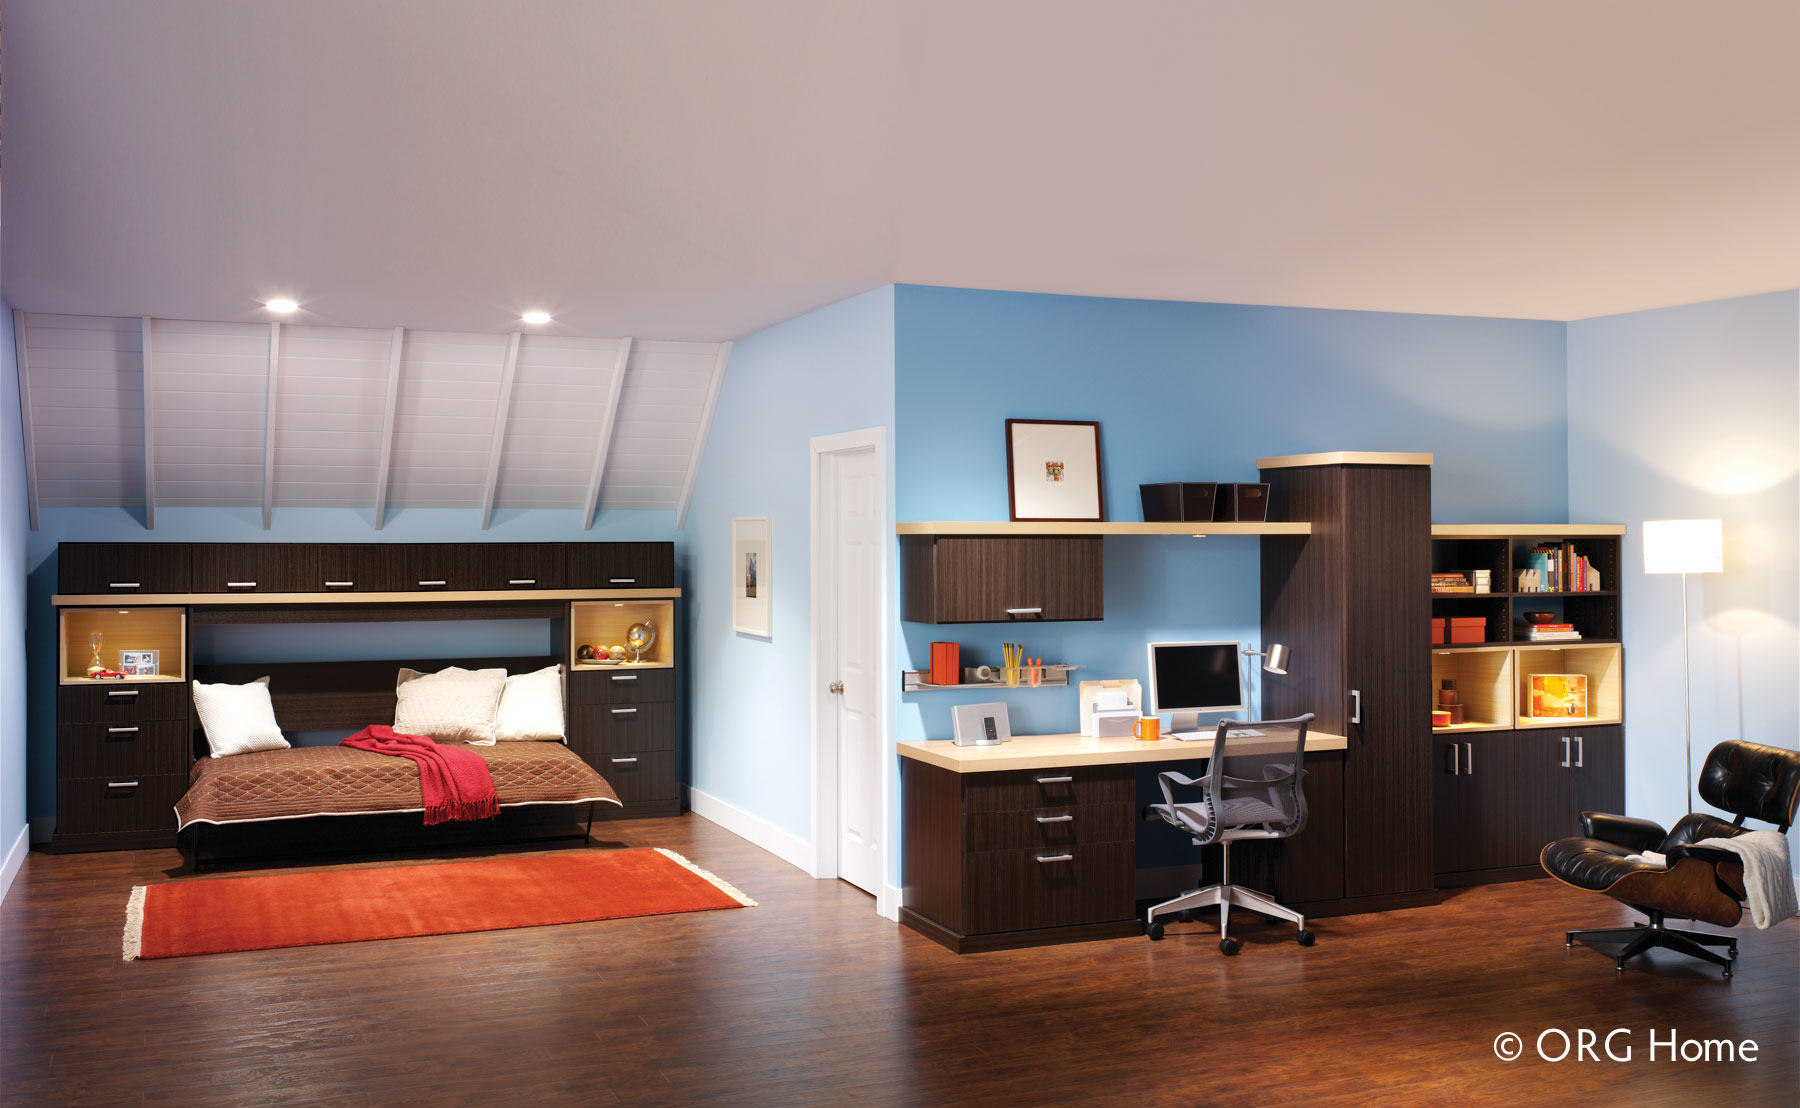 Home office with murphy bed Interior Design Murphy Bed And Office Storage Showplace Cabinetry Denver Murphy Bed Colorado Space Solutions